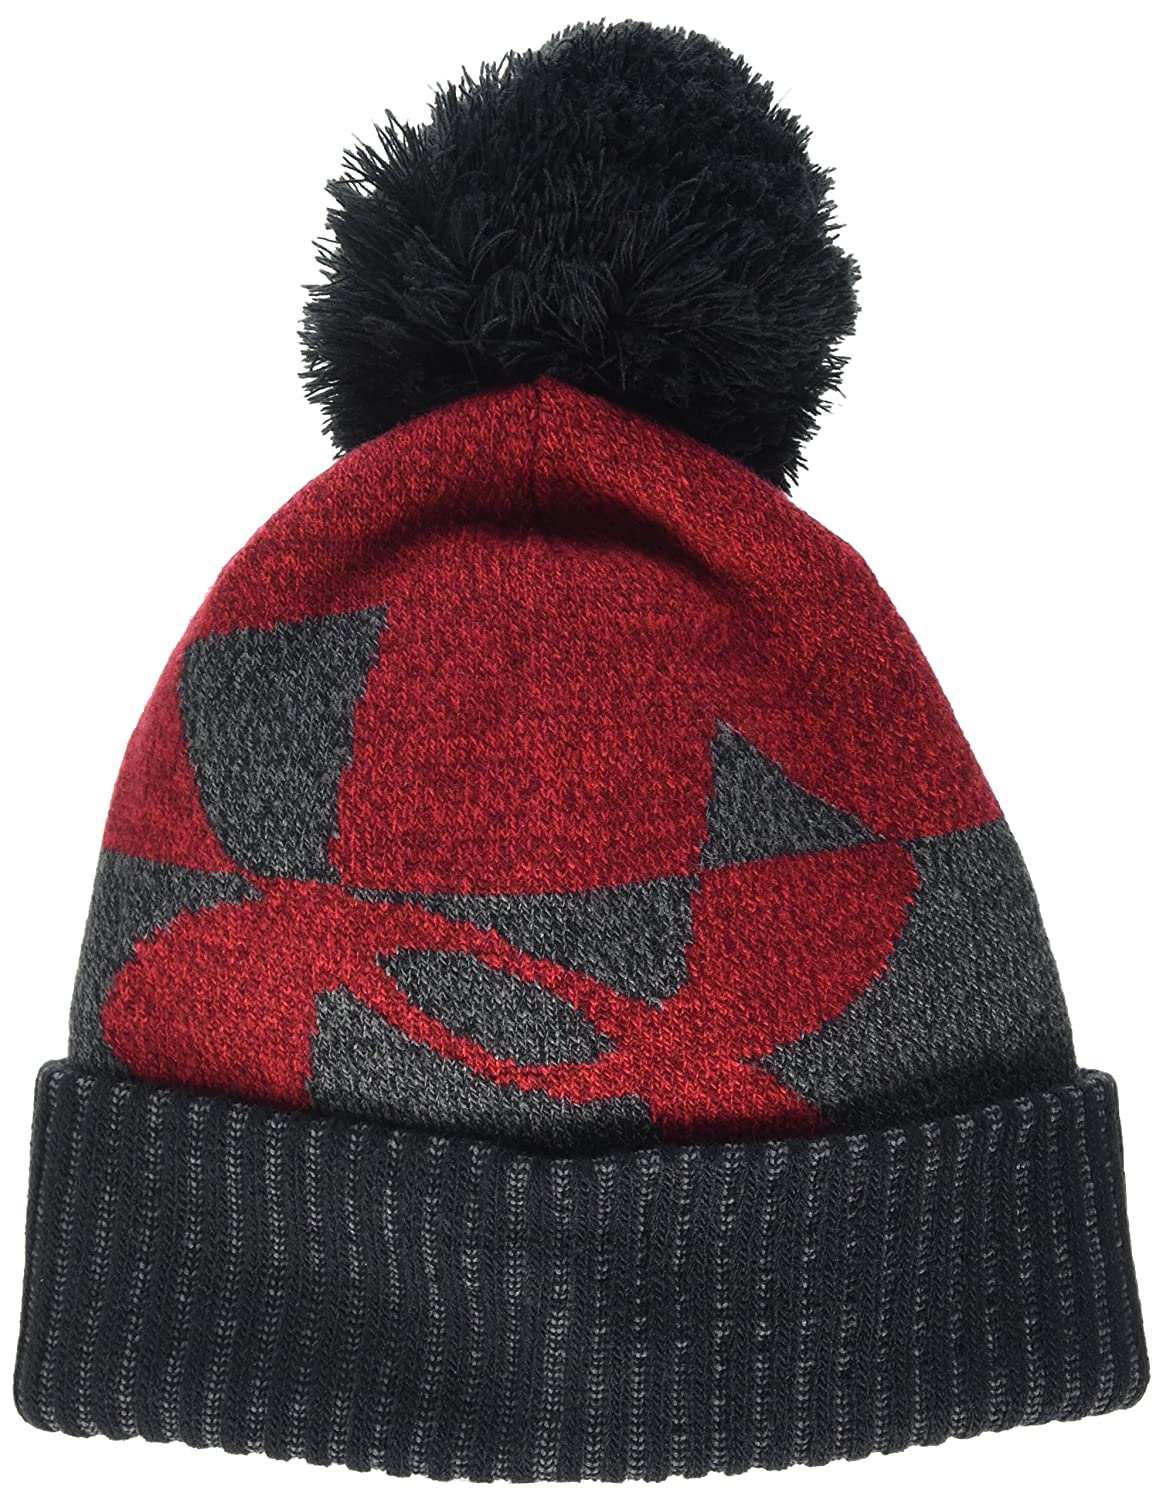 eef9c12b7 Under Armour Boys' Pom Beanie upd: Amazon.ca: Clothing & Accessories